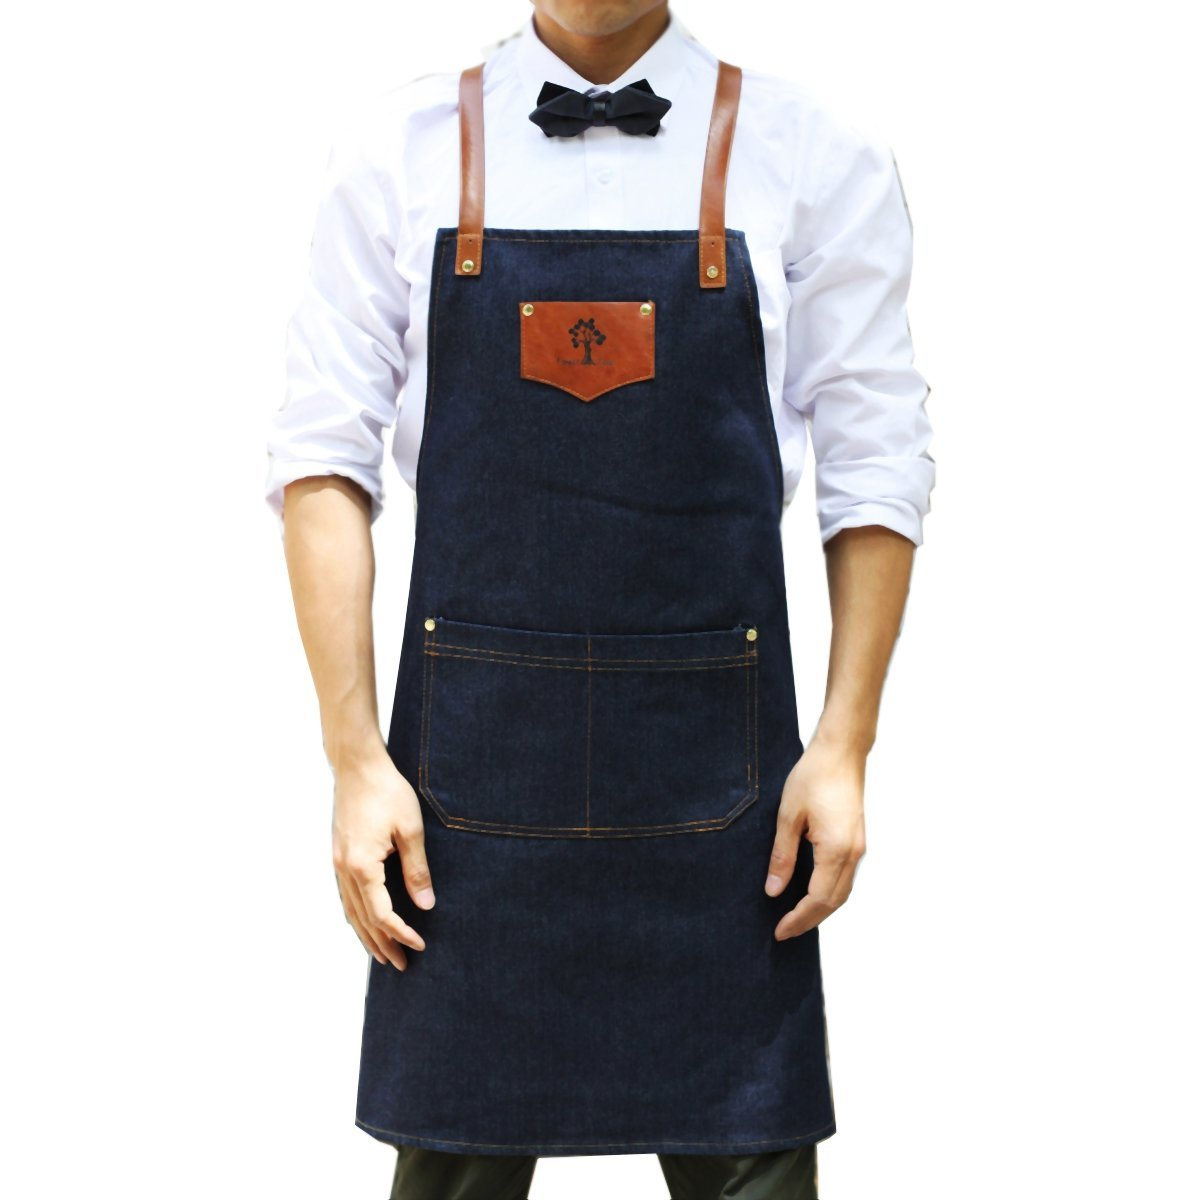 VAHOME Denim Chef Shop Apron with Pockets Durable & Comfortable